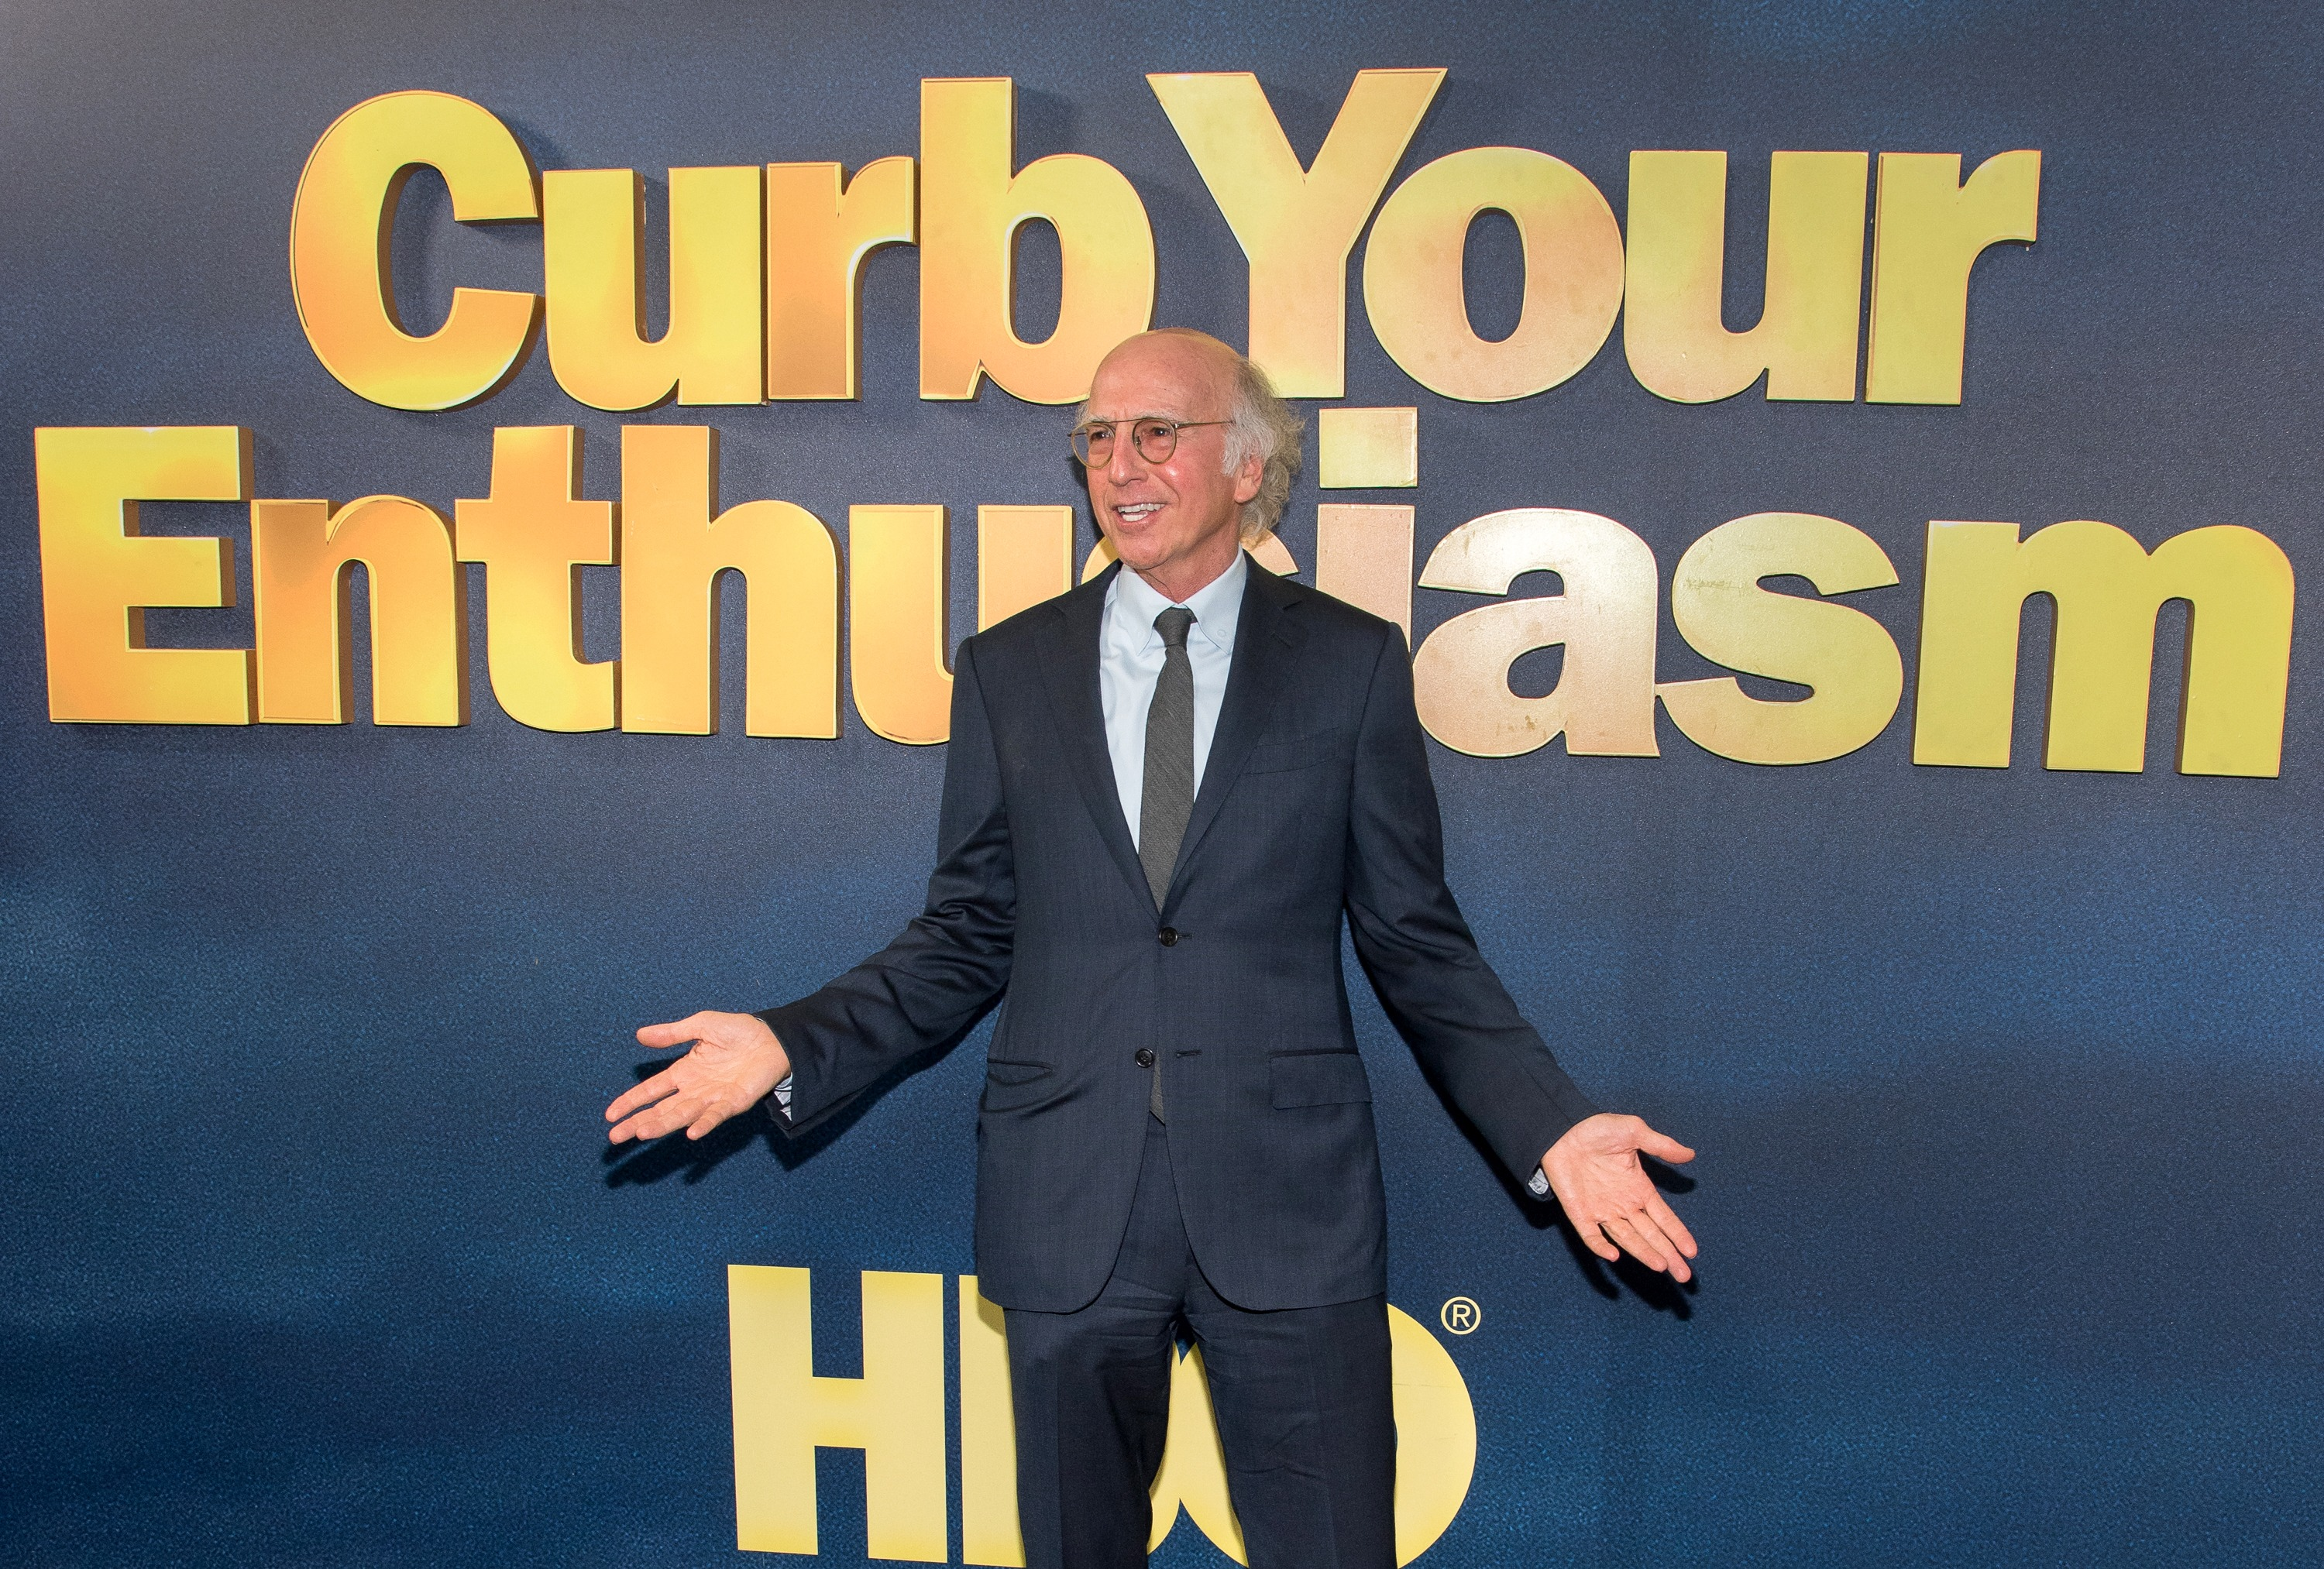 """NEW YORK, NY - SEPTEMBER 27:  Larry David attends the """"Curb Your Enthusiasm"""" season 9 premiere at SVA Theater on September 27, 2017 in New York City.  (Photo by Mike Pont/FilmMagic)"""